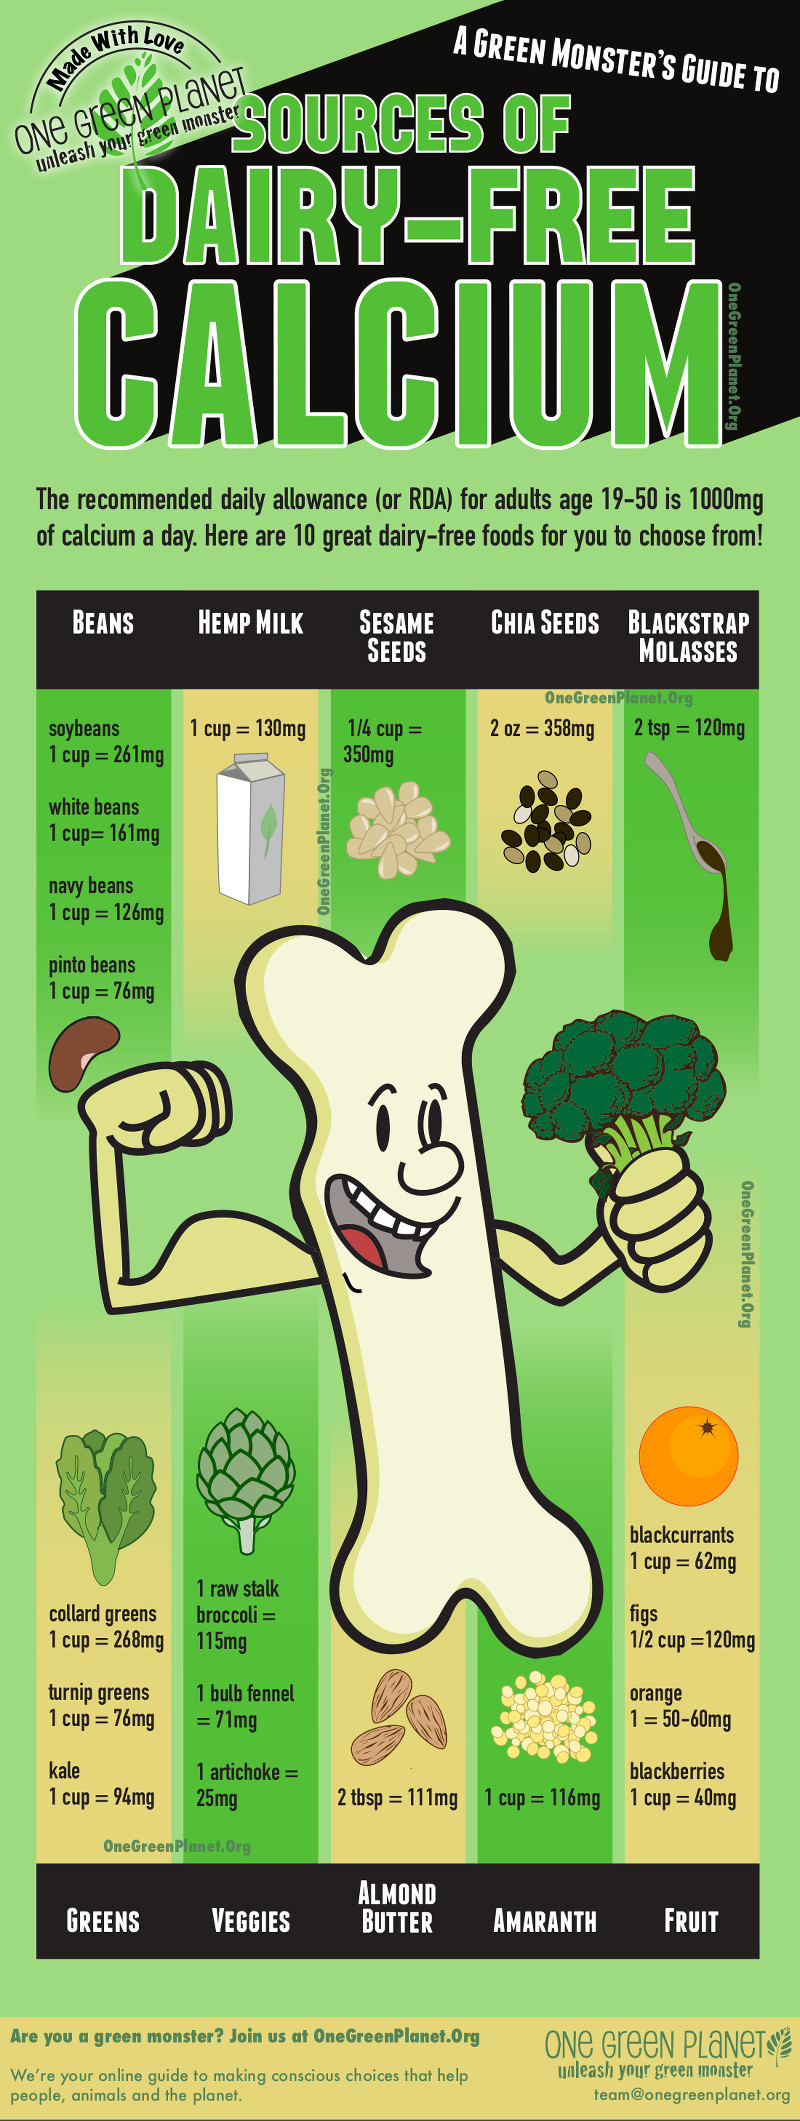 10 Sources of Dairy-Free Calcium Infographic